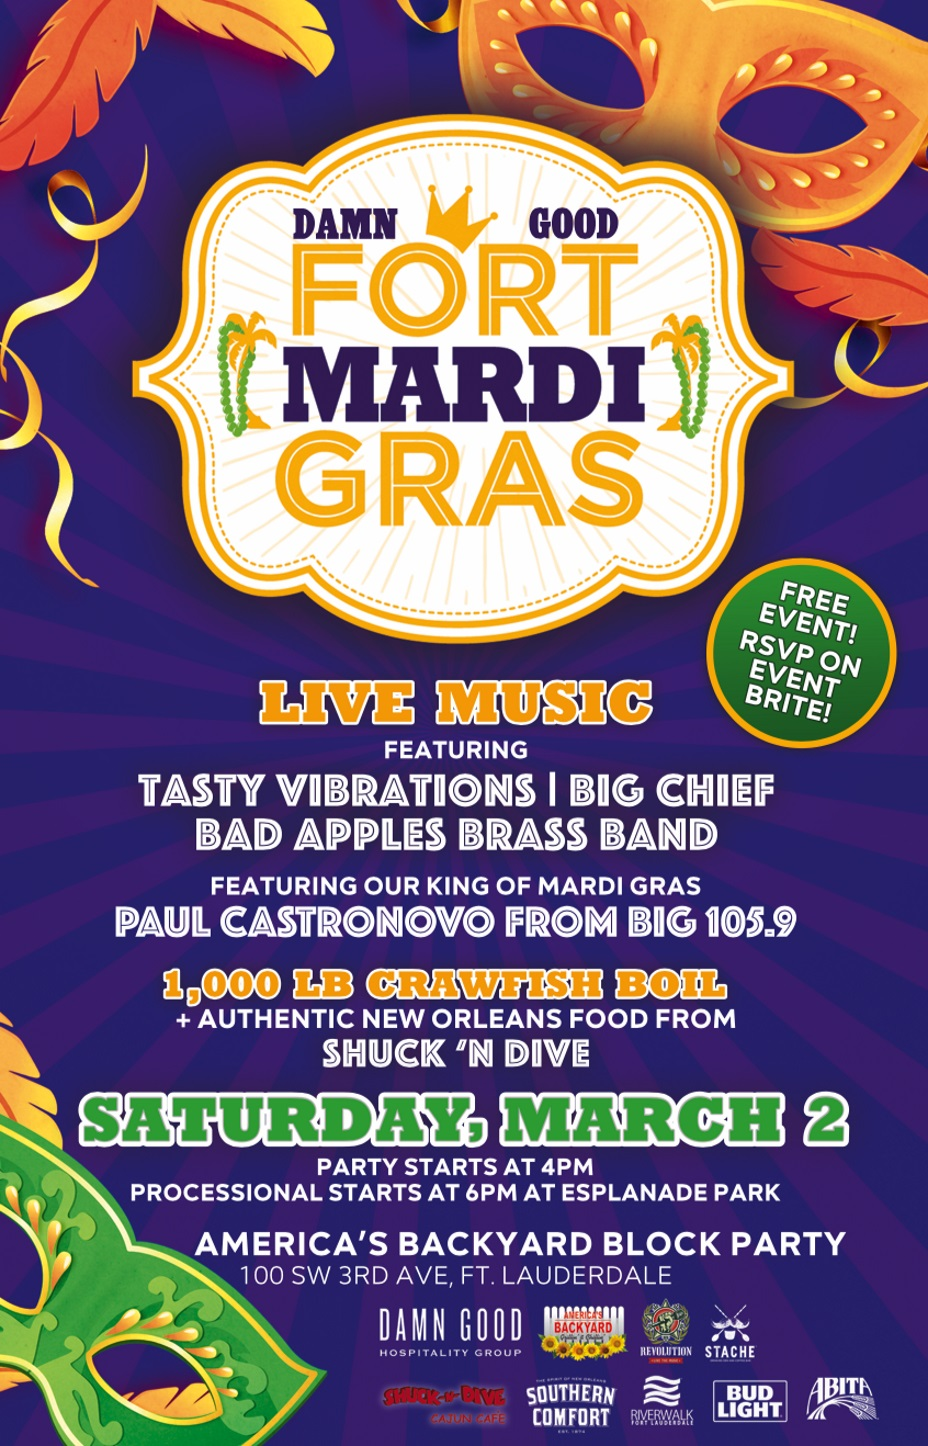 Image of the Fort Mardi Gras poster